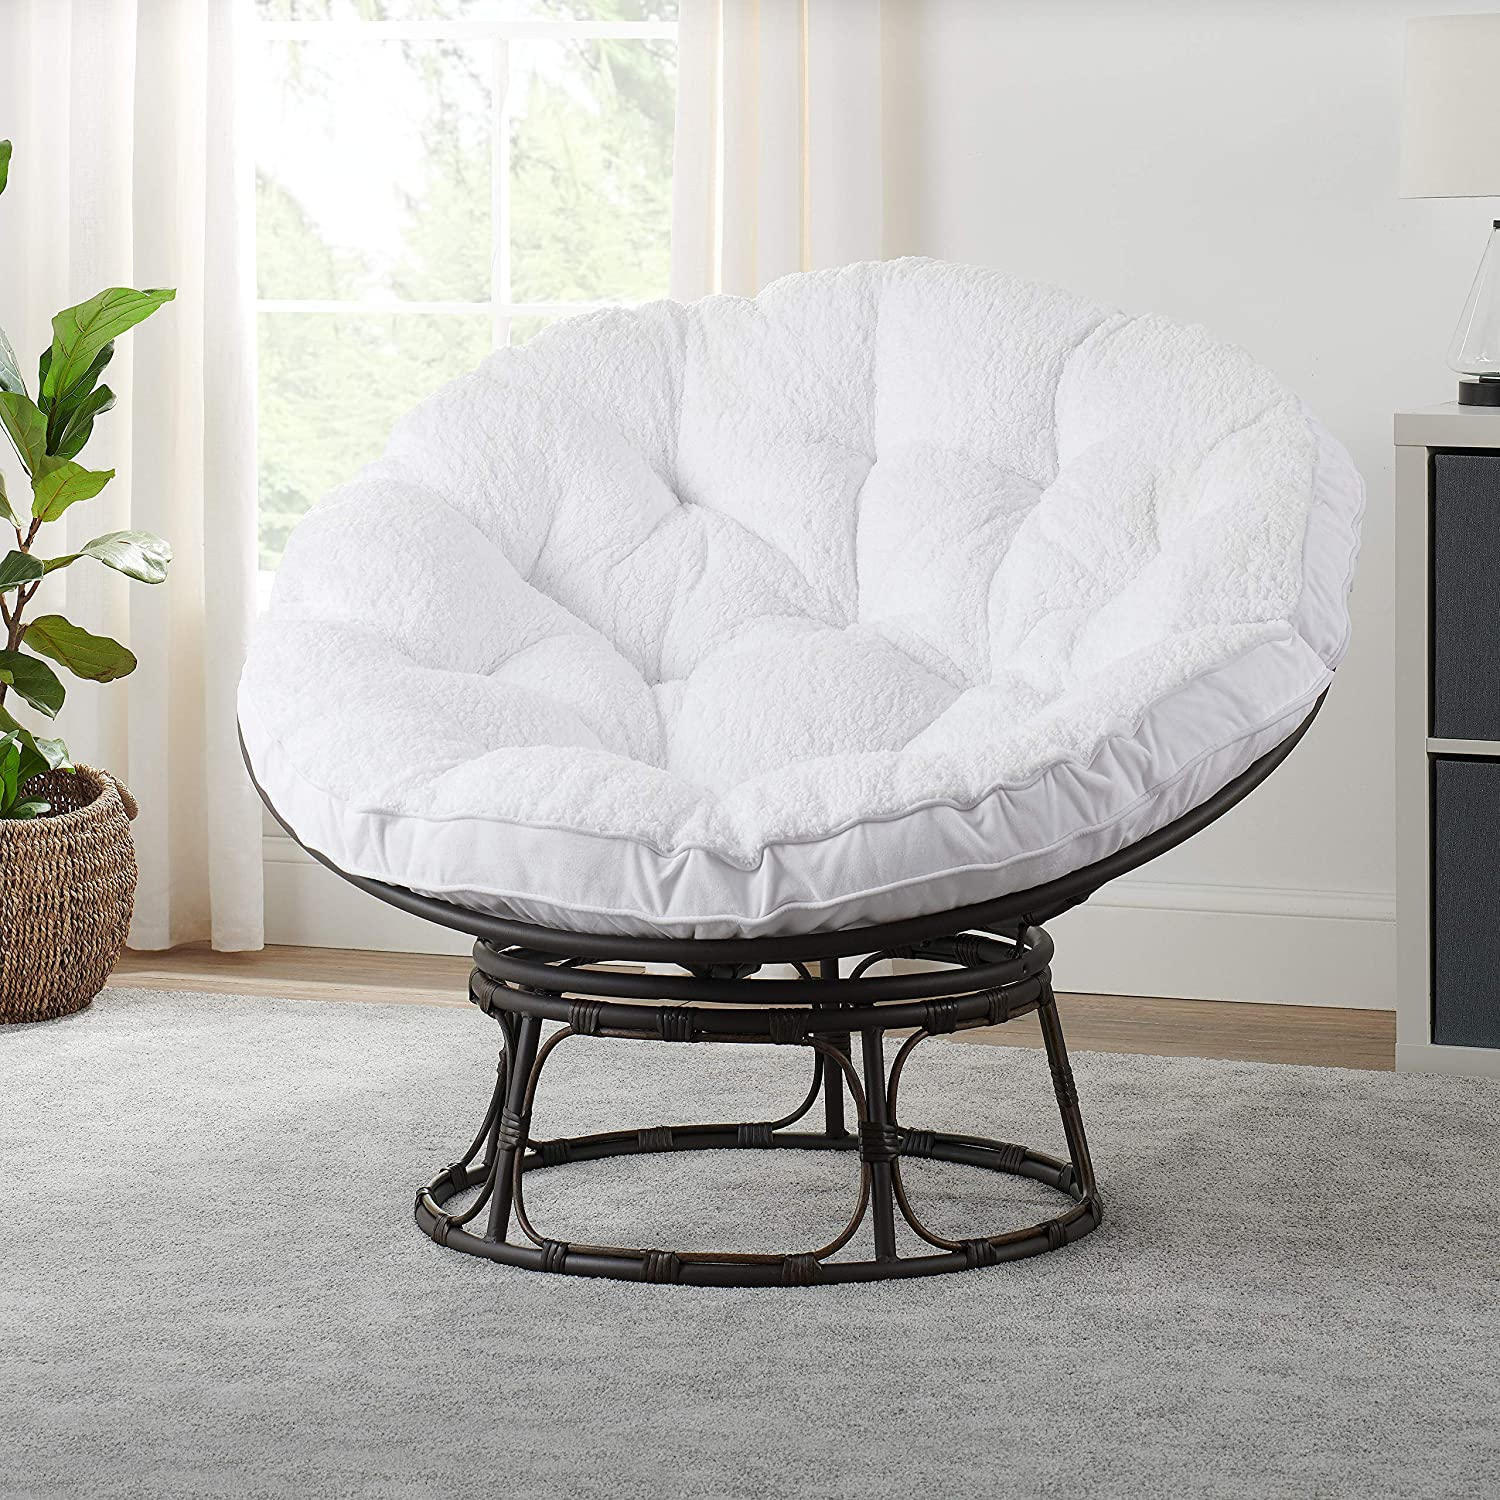 Better Homes & Gardens Papasan Chair with Fabric Cushion (White)